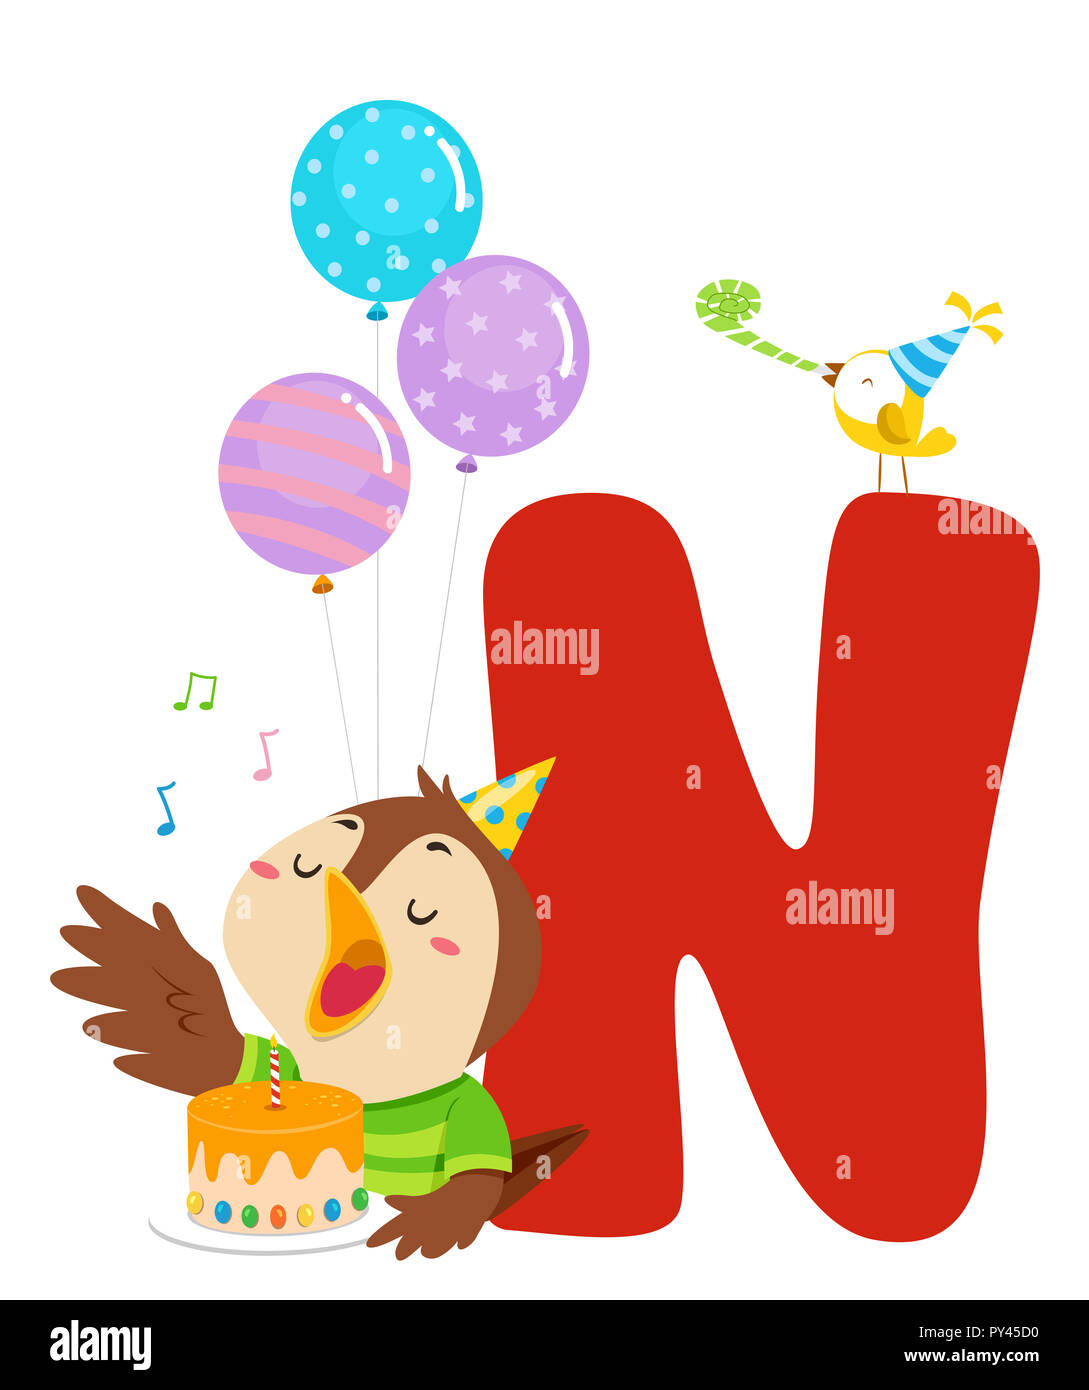 illustration of a nightingale bird singing and holding a birthday cake with balloons and letter n